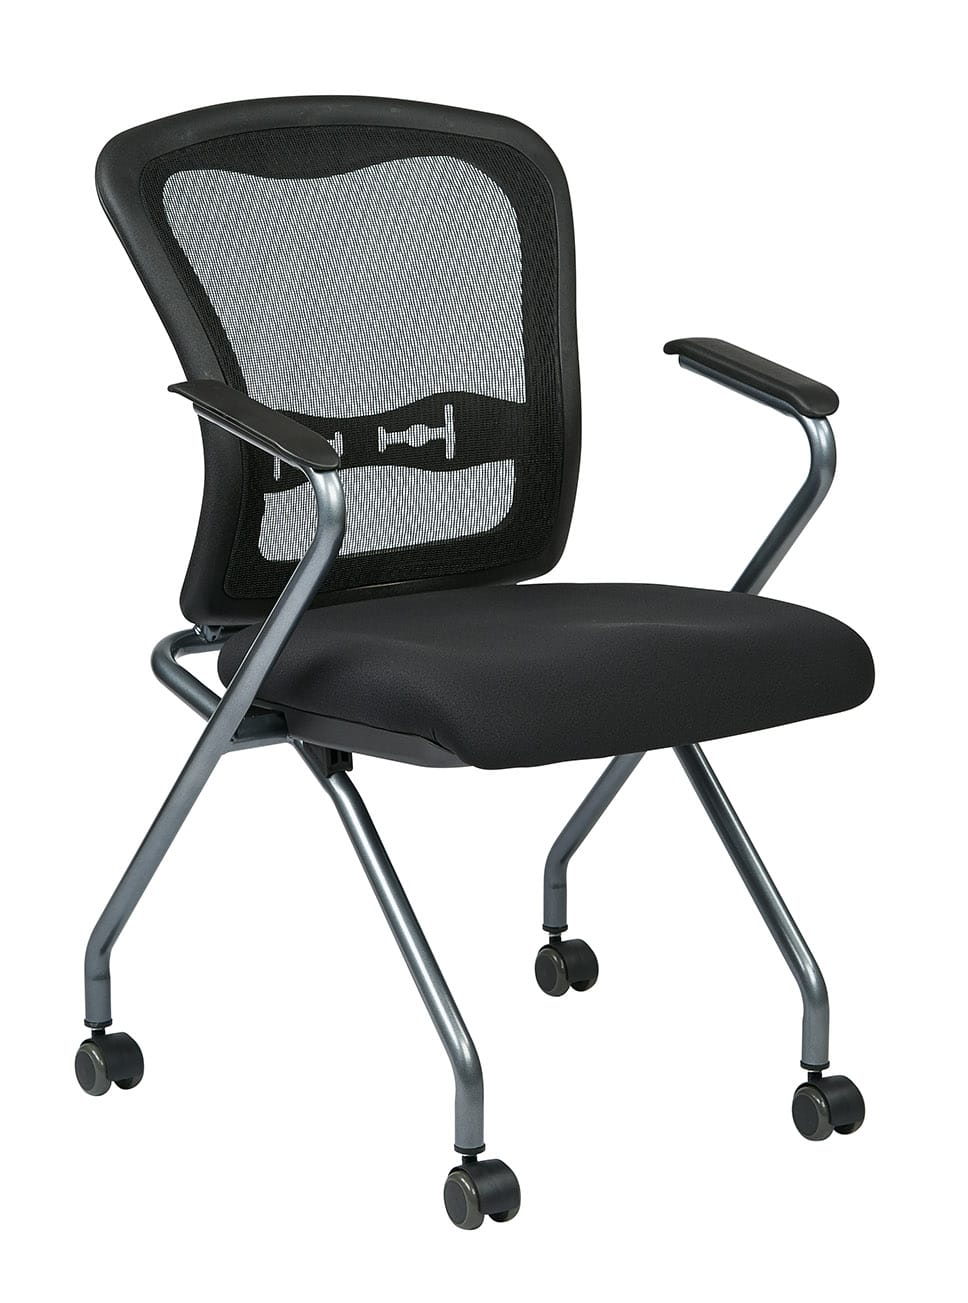 Deluxe Folding Chair With Progrid 174 Back Pnp Office Furniture